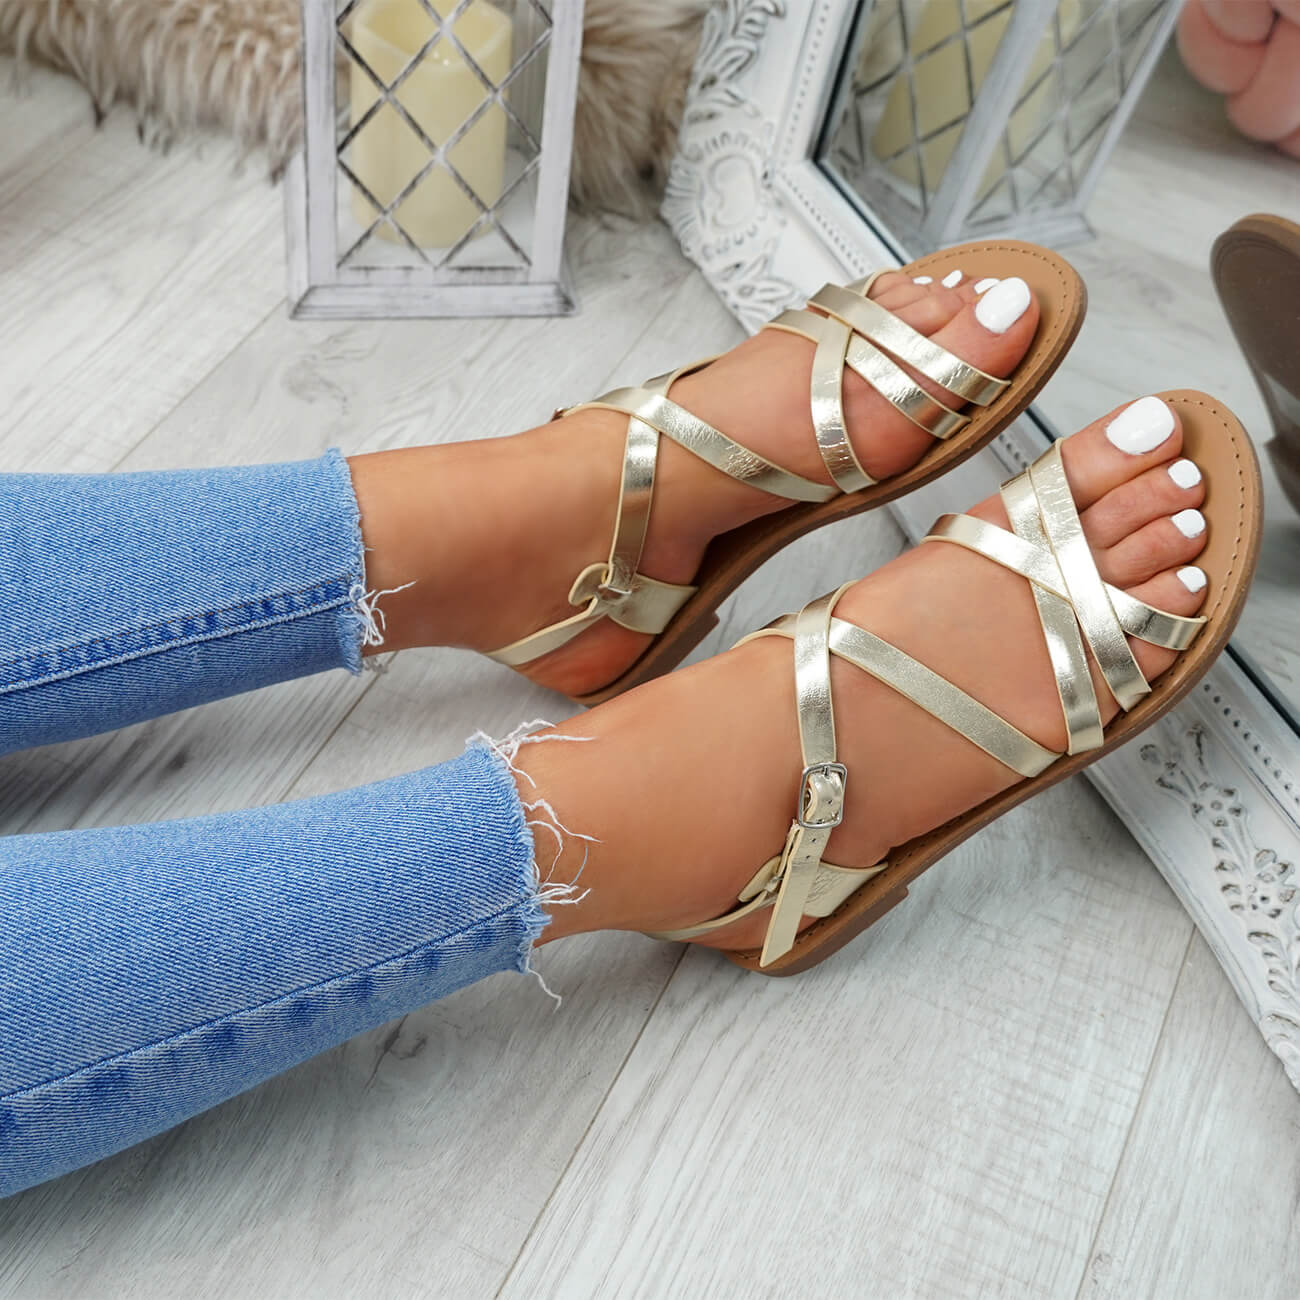 WOMENS-LADIES-ANKLE-STRAP-PEEP-TOE-BUCKLE-FLAT-SANDALS-SUMMER-CASUAL-SHOES thumbnail 18